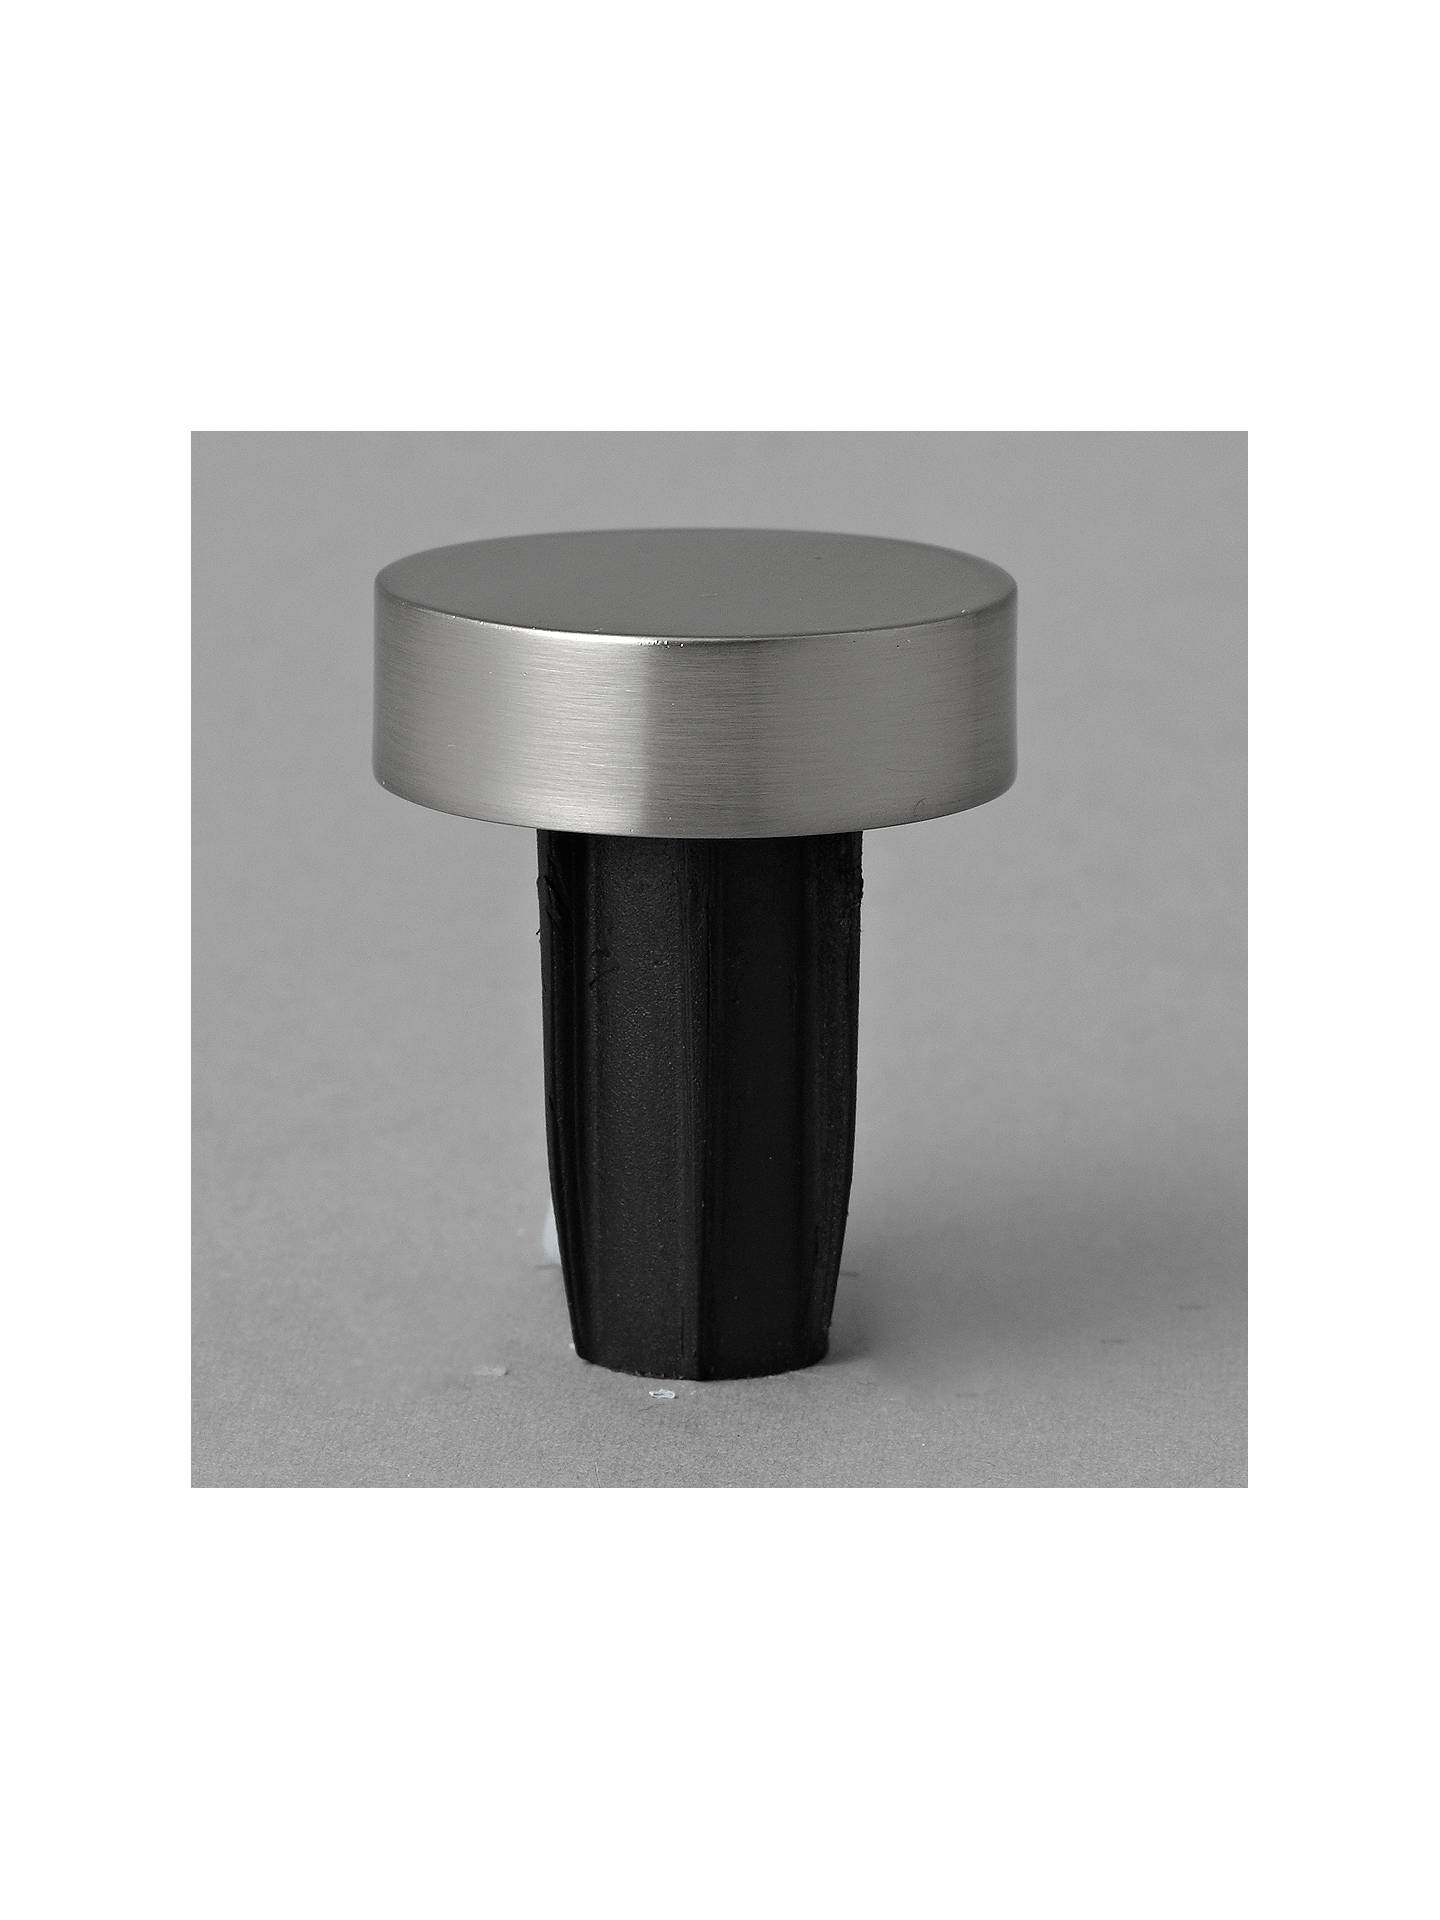 BuyJohn Lewis & Partners Steel Curtain Stud Finial, Dia.19mm Online at johnlewis.com